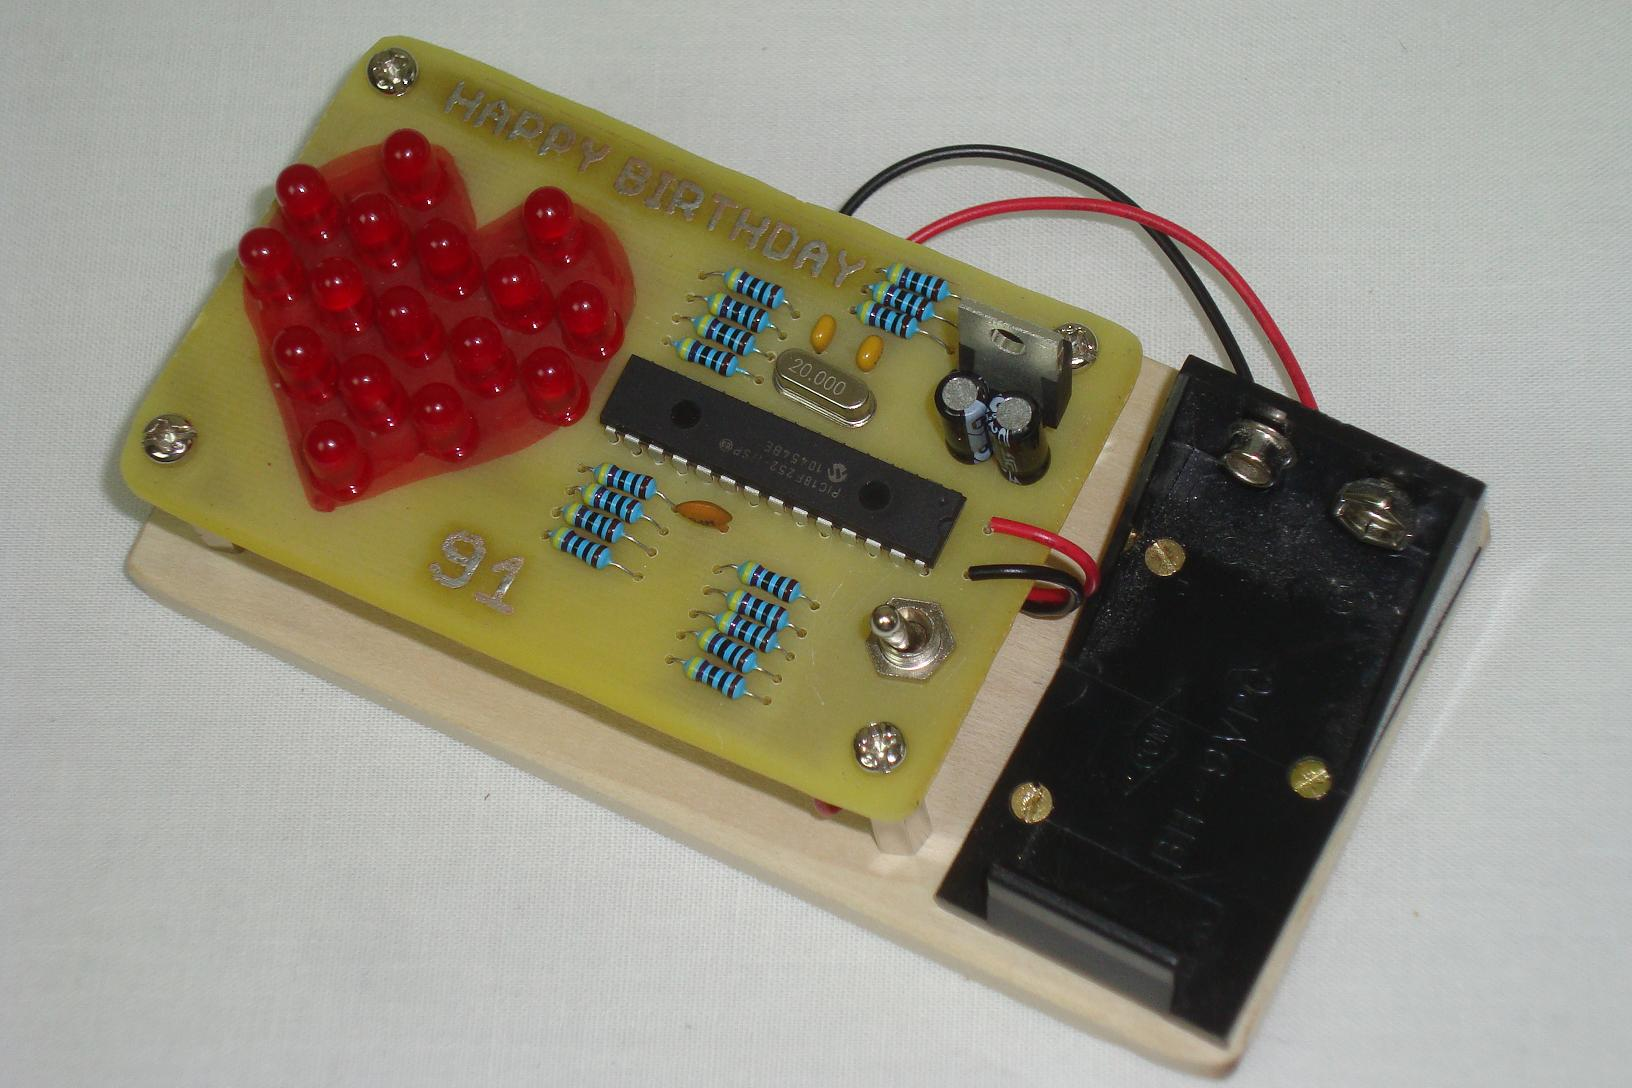 Led Heart Pwm Fading Conclusion Pyroelectro News Projects Circuits Tutorials